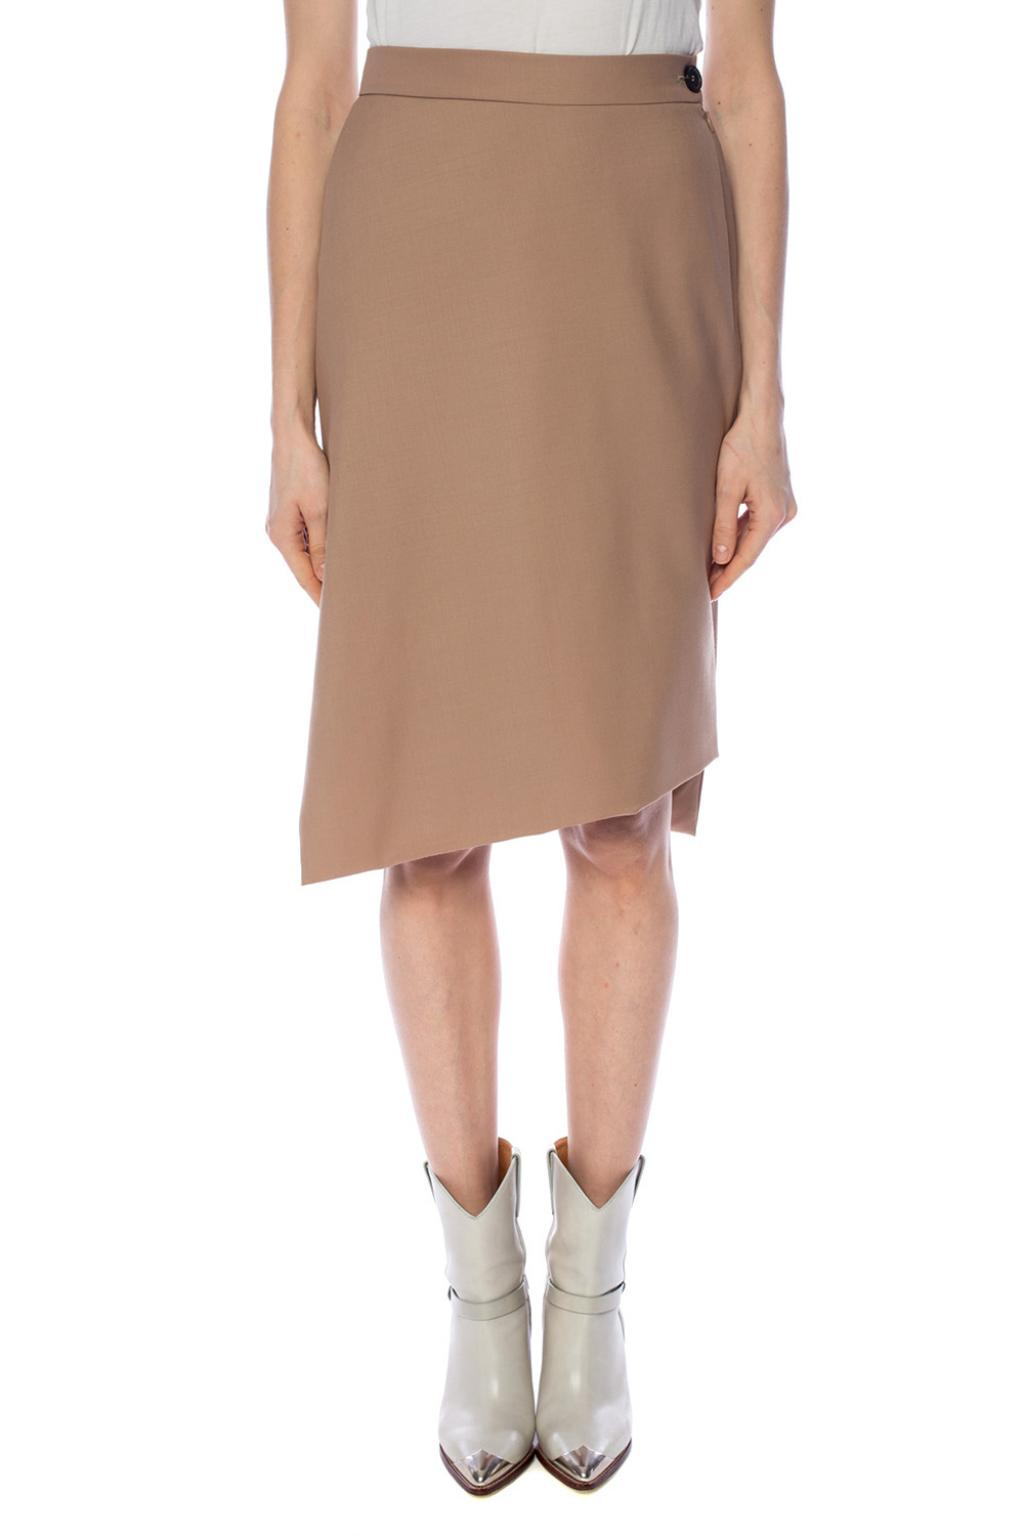 87b5755a7 Vivienne Westwood Skirt With Cut-out Details in Brown - Lyst